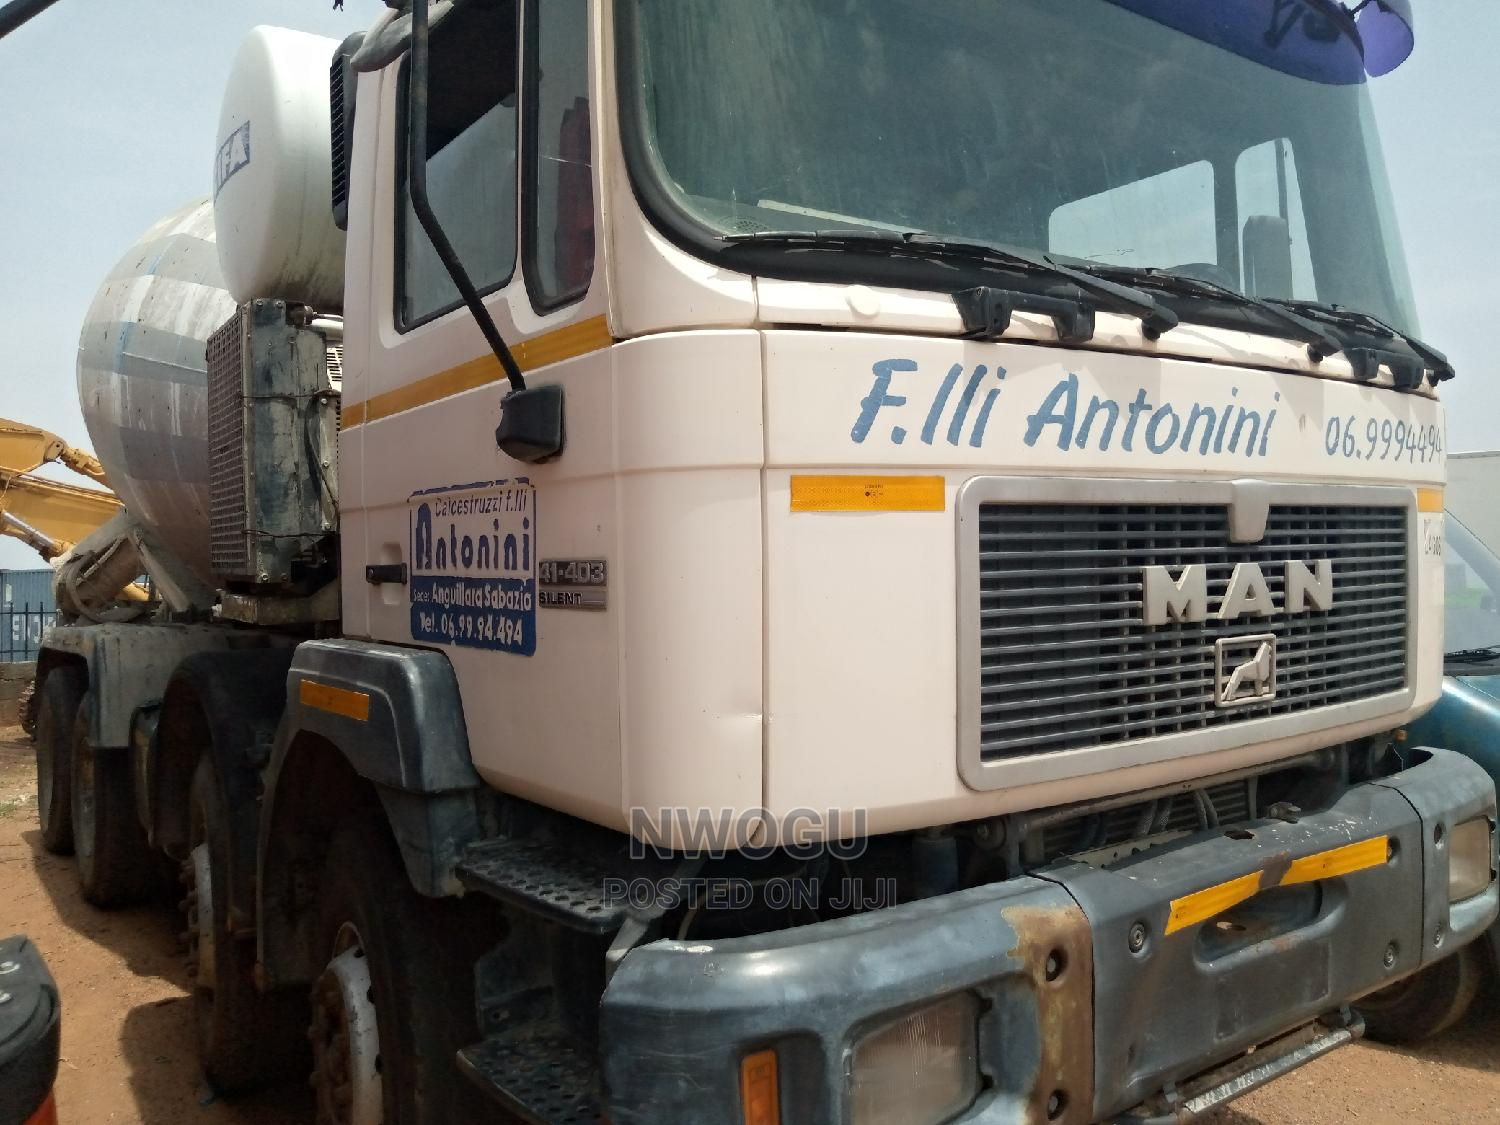 Foreign Used Concrete Mixer   Heavy Equipment for sale in Gwarinpa, Abuja (FCT) State, Nigeria